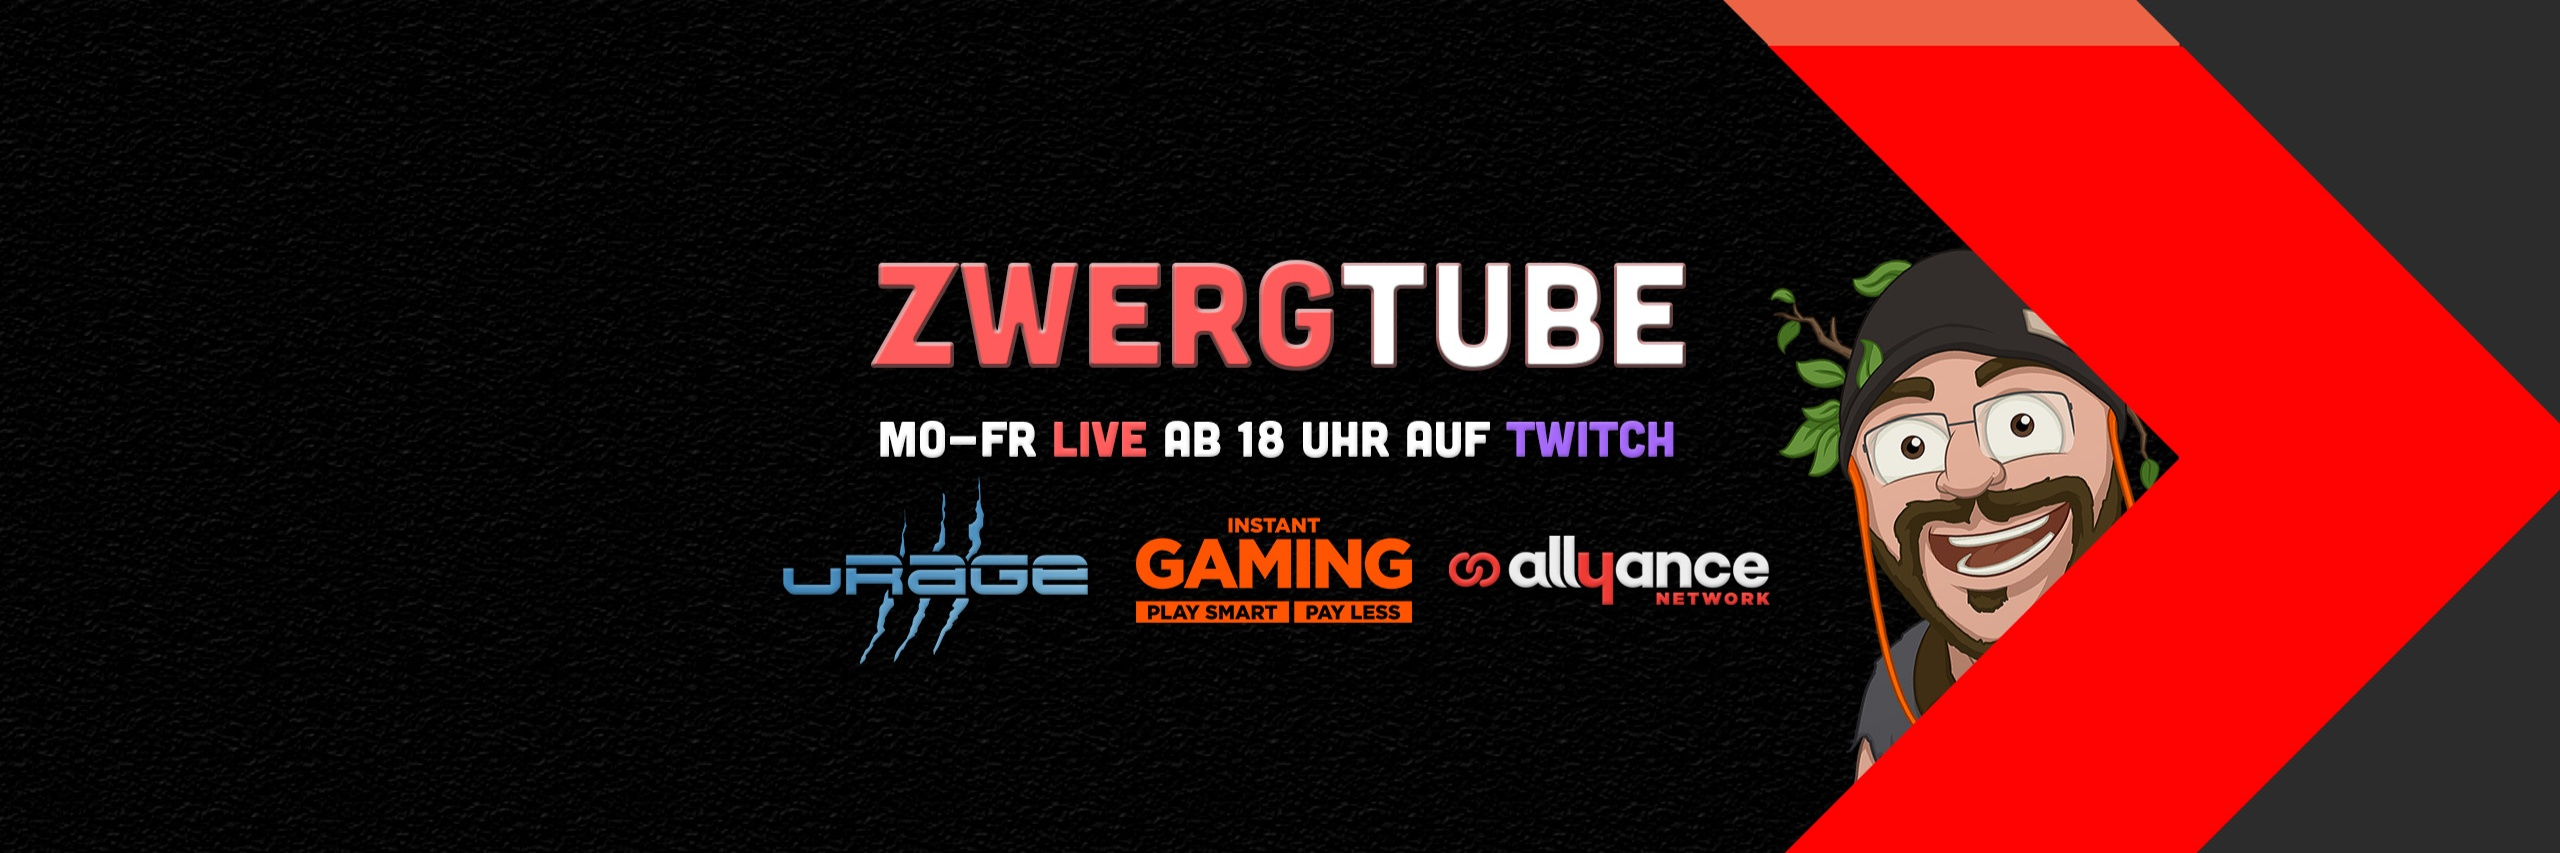 ZwergTube Shop -